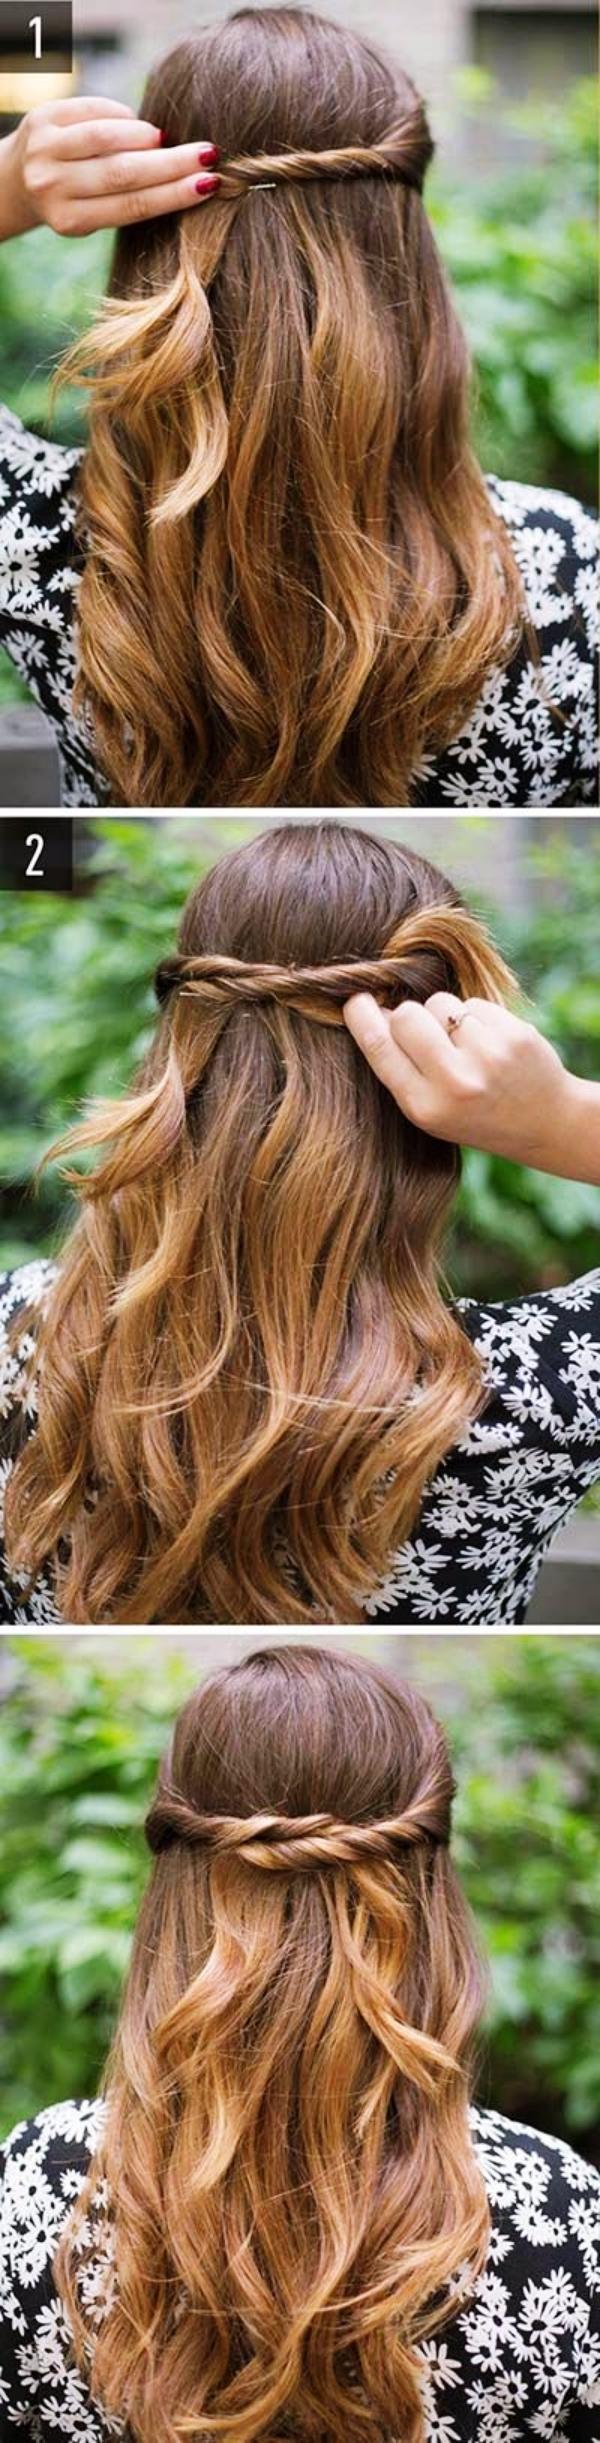 Déesse grecque-Half-up-Half-Down-Hairstyles